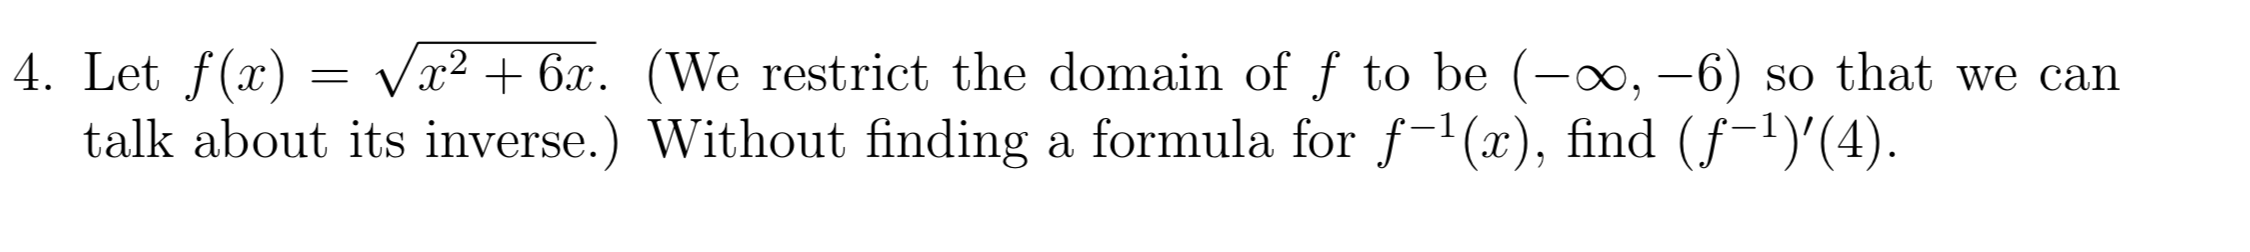 4. Let f(x talk about its inverse.) Without finding a formula for f1(x), find (f1)'(4) Vx26 (We restrict the domain of f to be (-oo, -6) so that we can